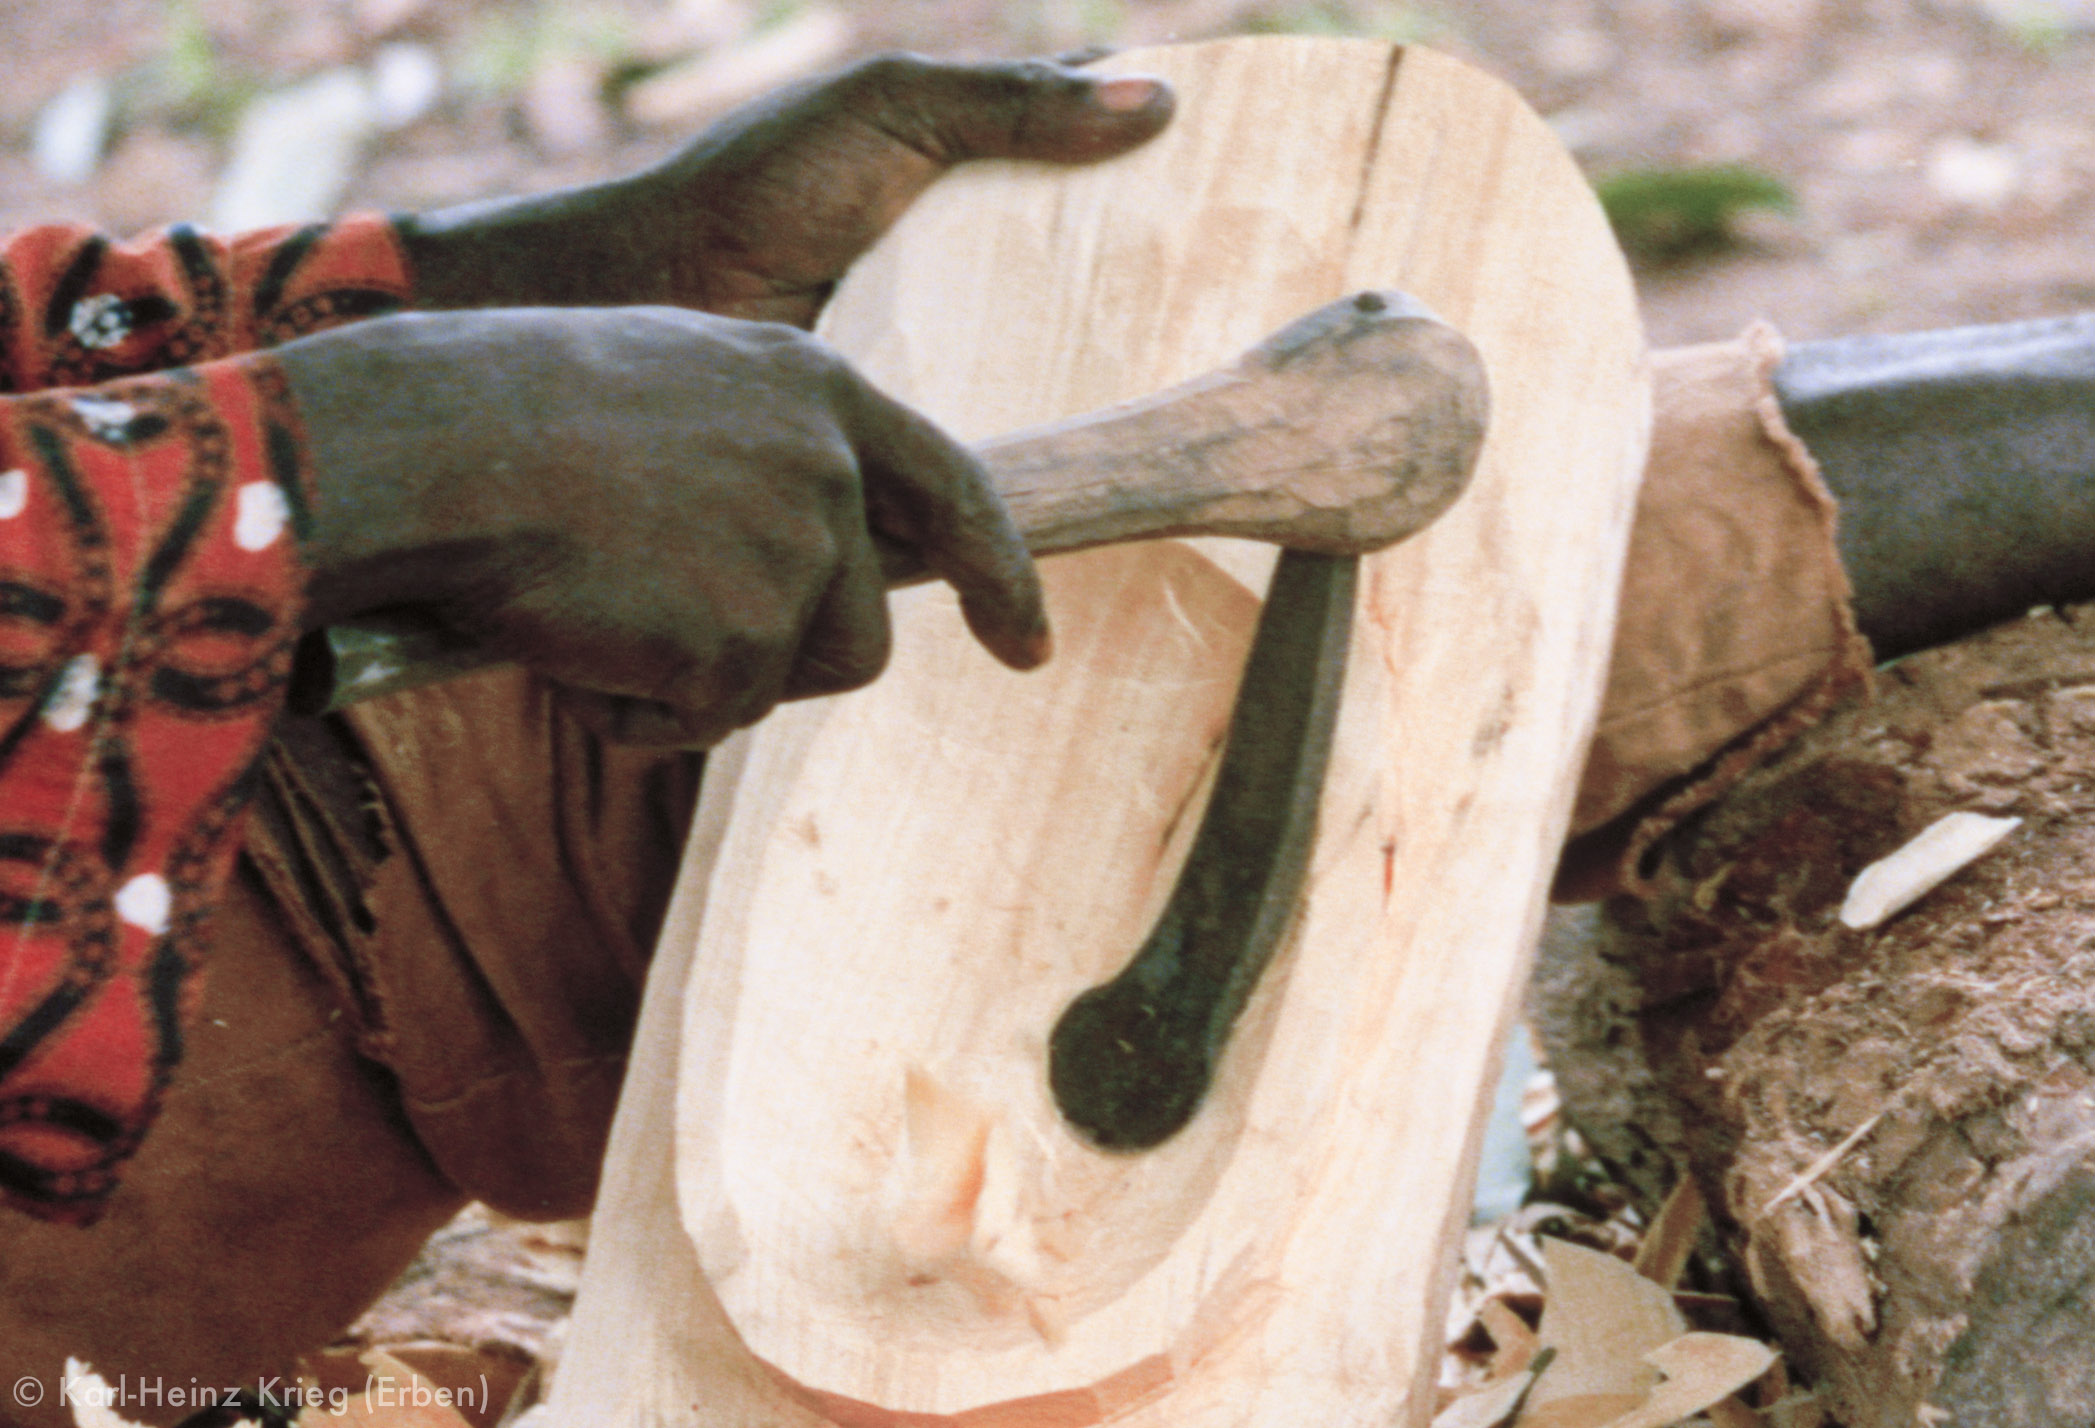 Sécondjéwin Dagnogo carving the back of the mask with an adze. Ziédougou (Region of Boundiali, Côte d'Ivoire), 1980. Photo: Karl-Heinz Krieg